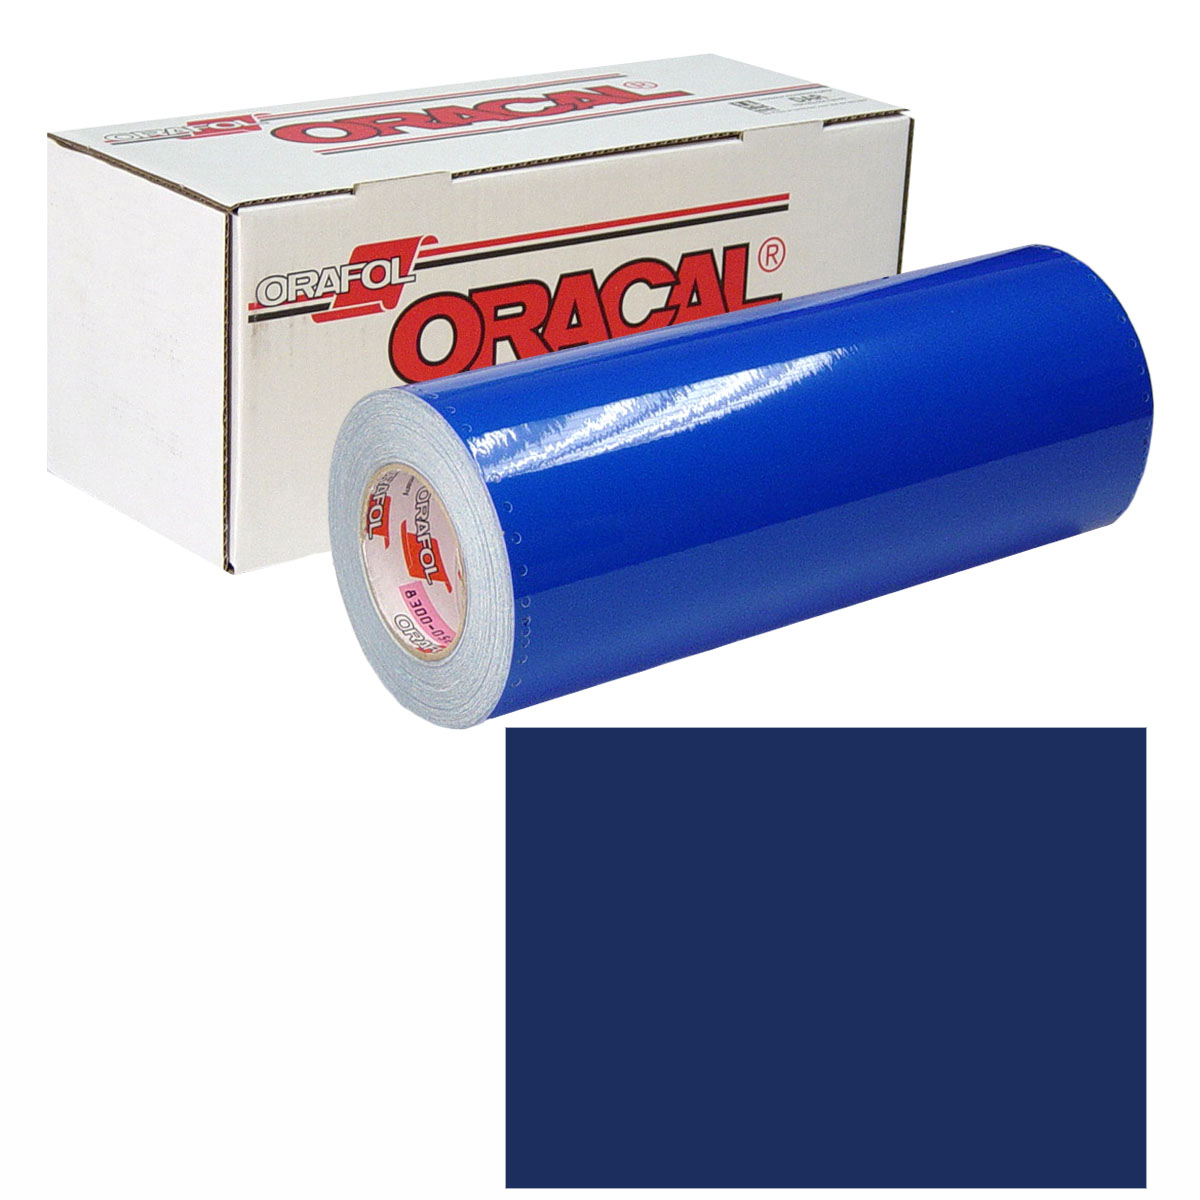 ORACAL 631 Unp 24in X 10yd 050 Dark Blue